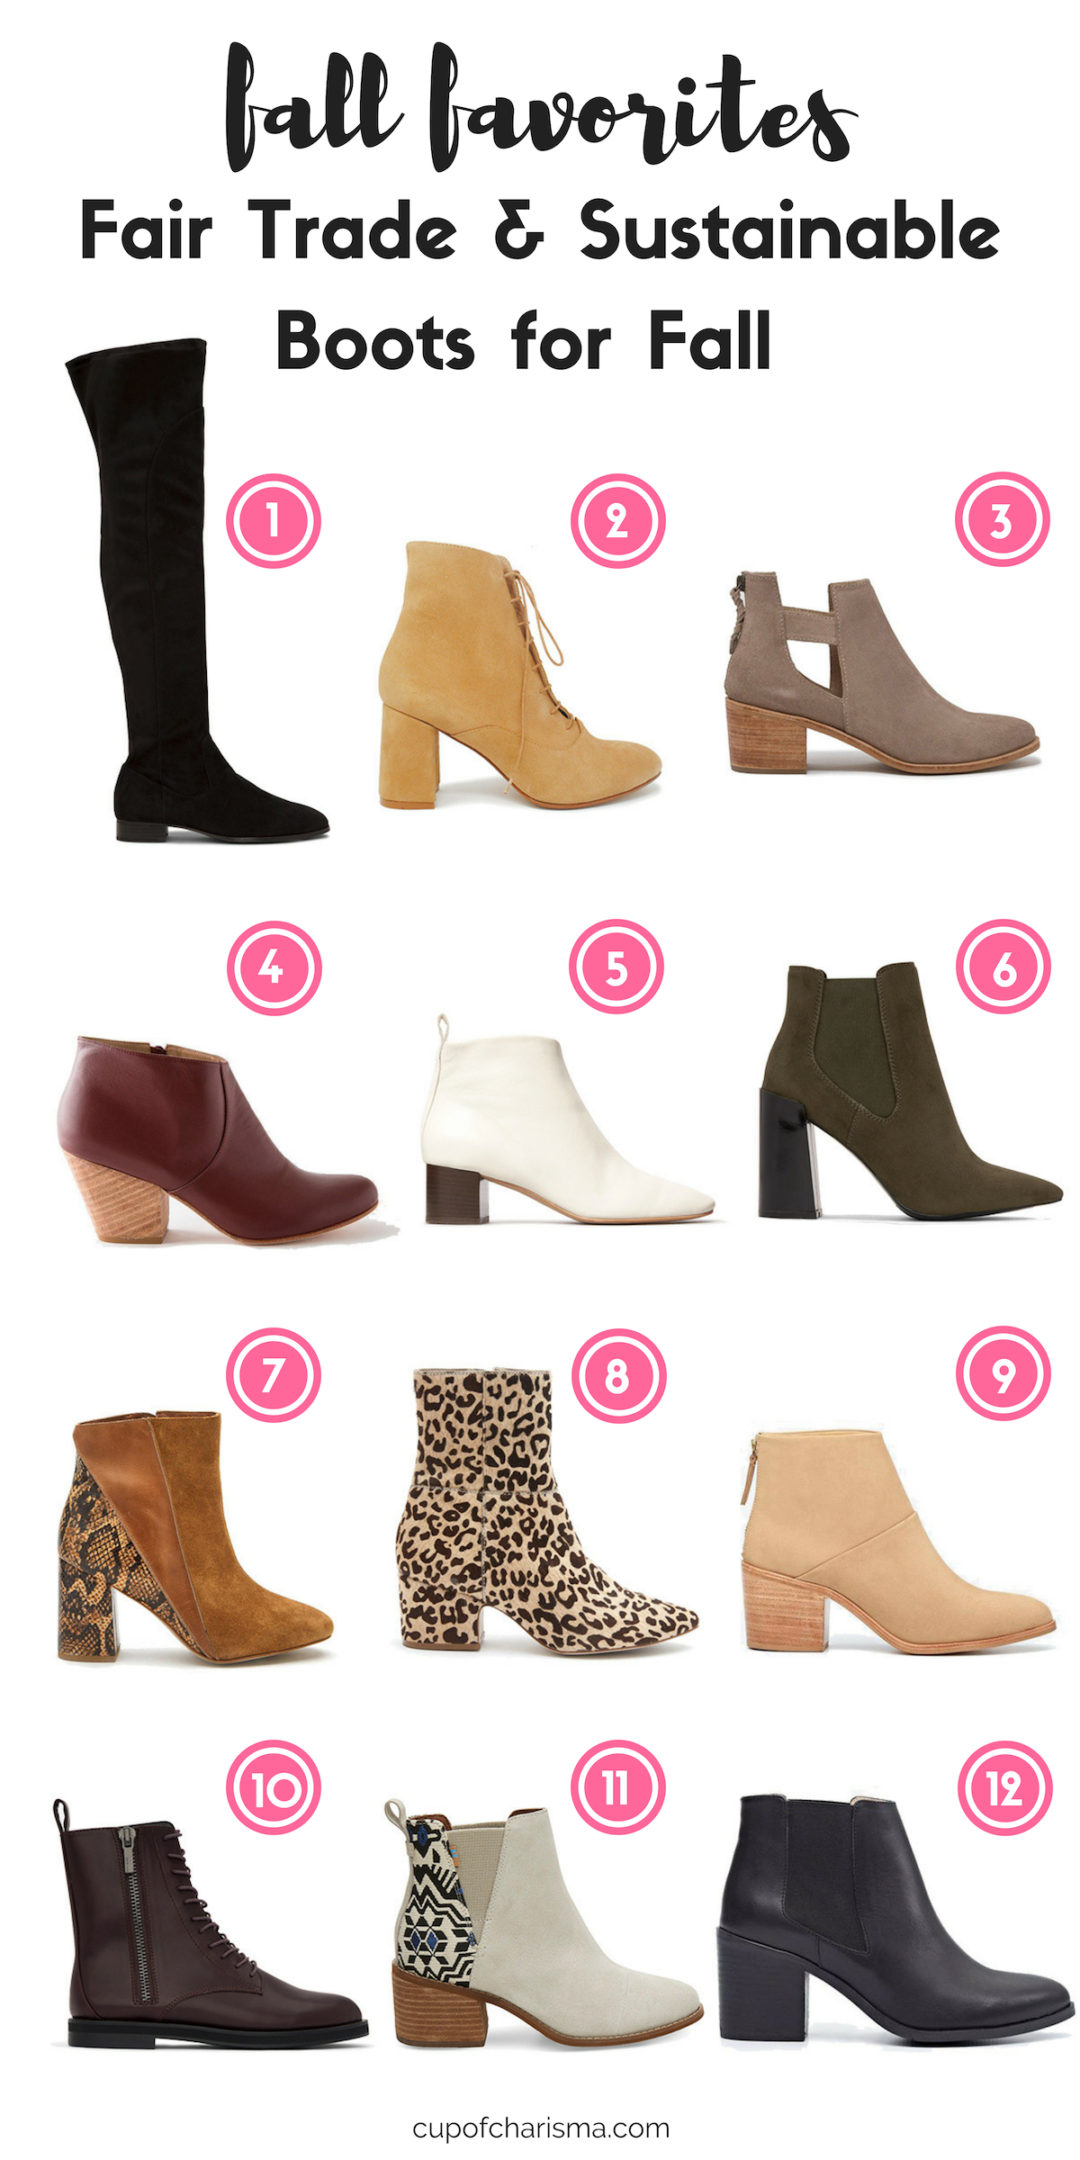 12 Fair-Trade and Sustainable Boots for Fall - Cup of Charisma